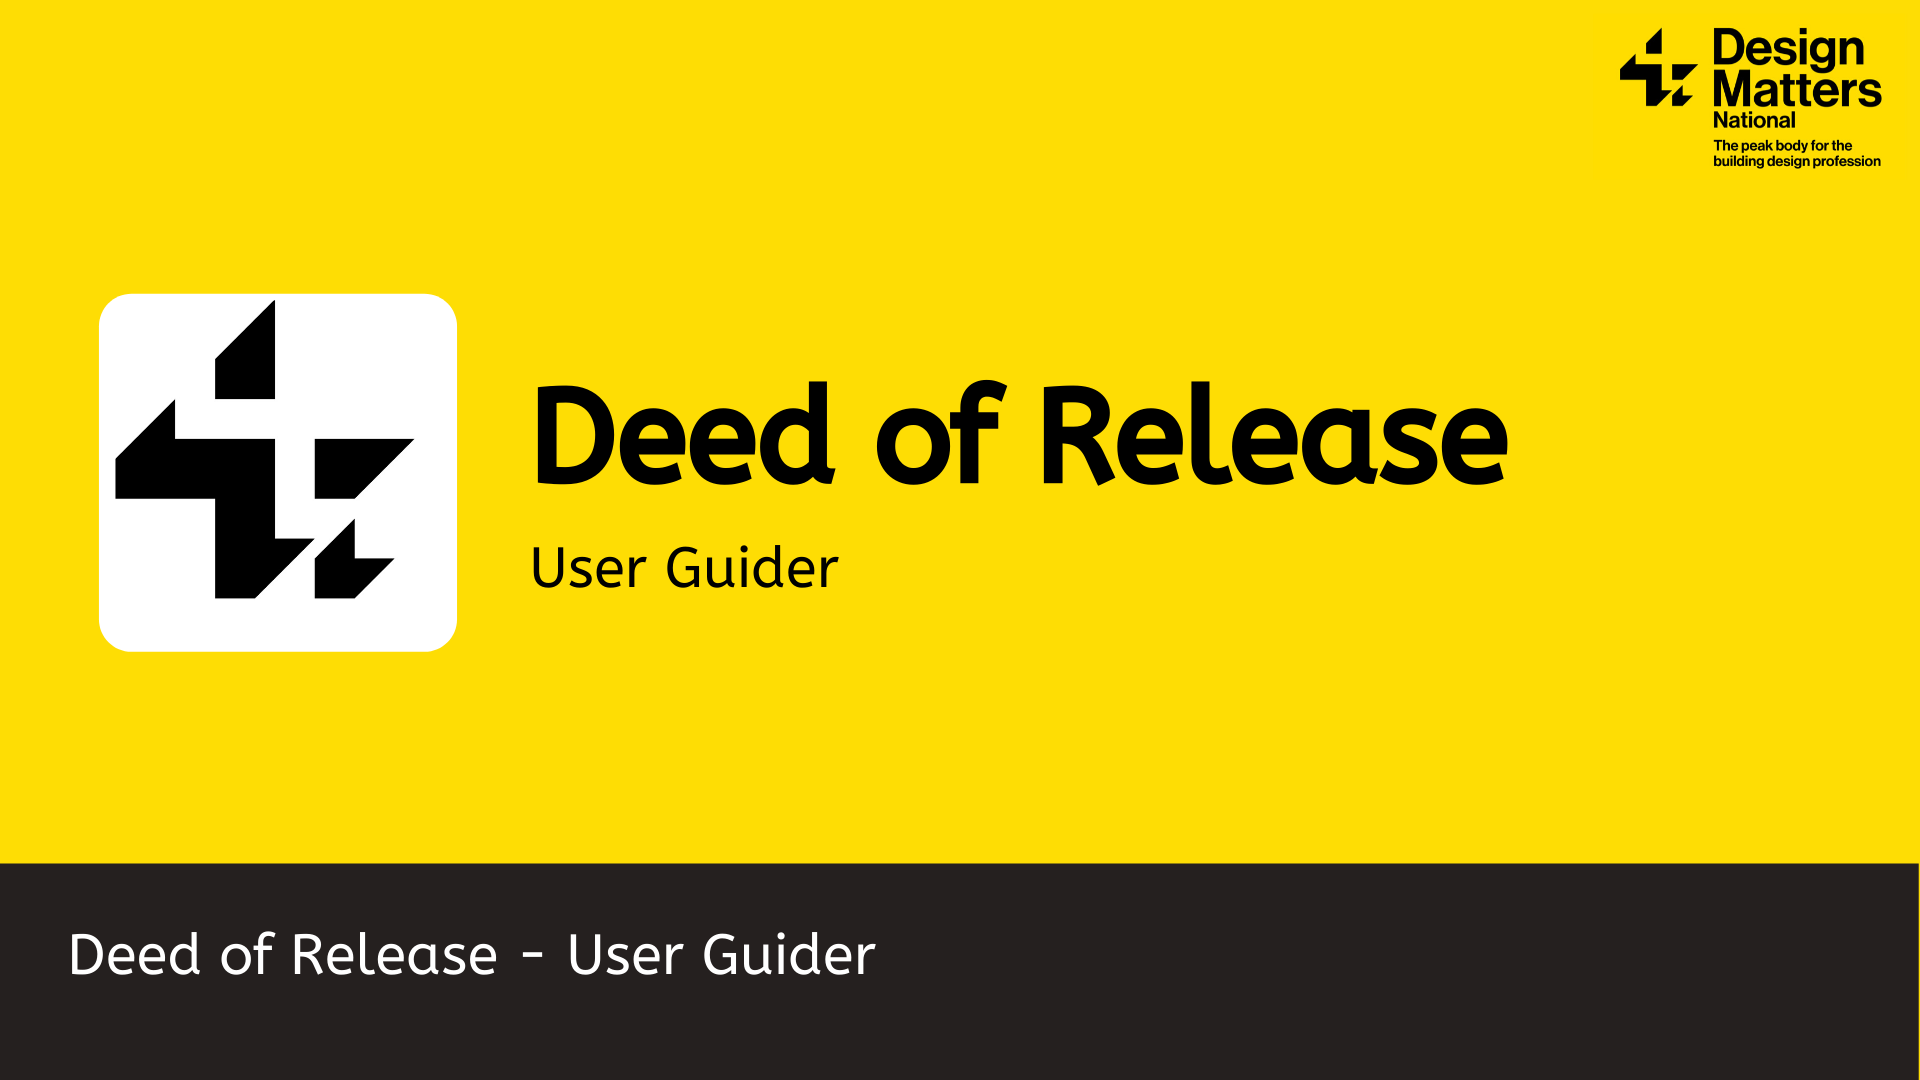 Deed of Release CAD files and User Guide